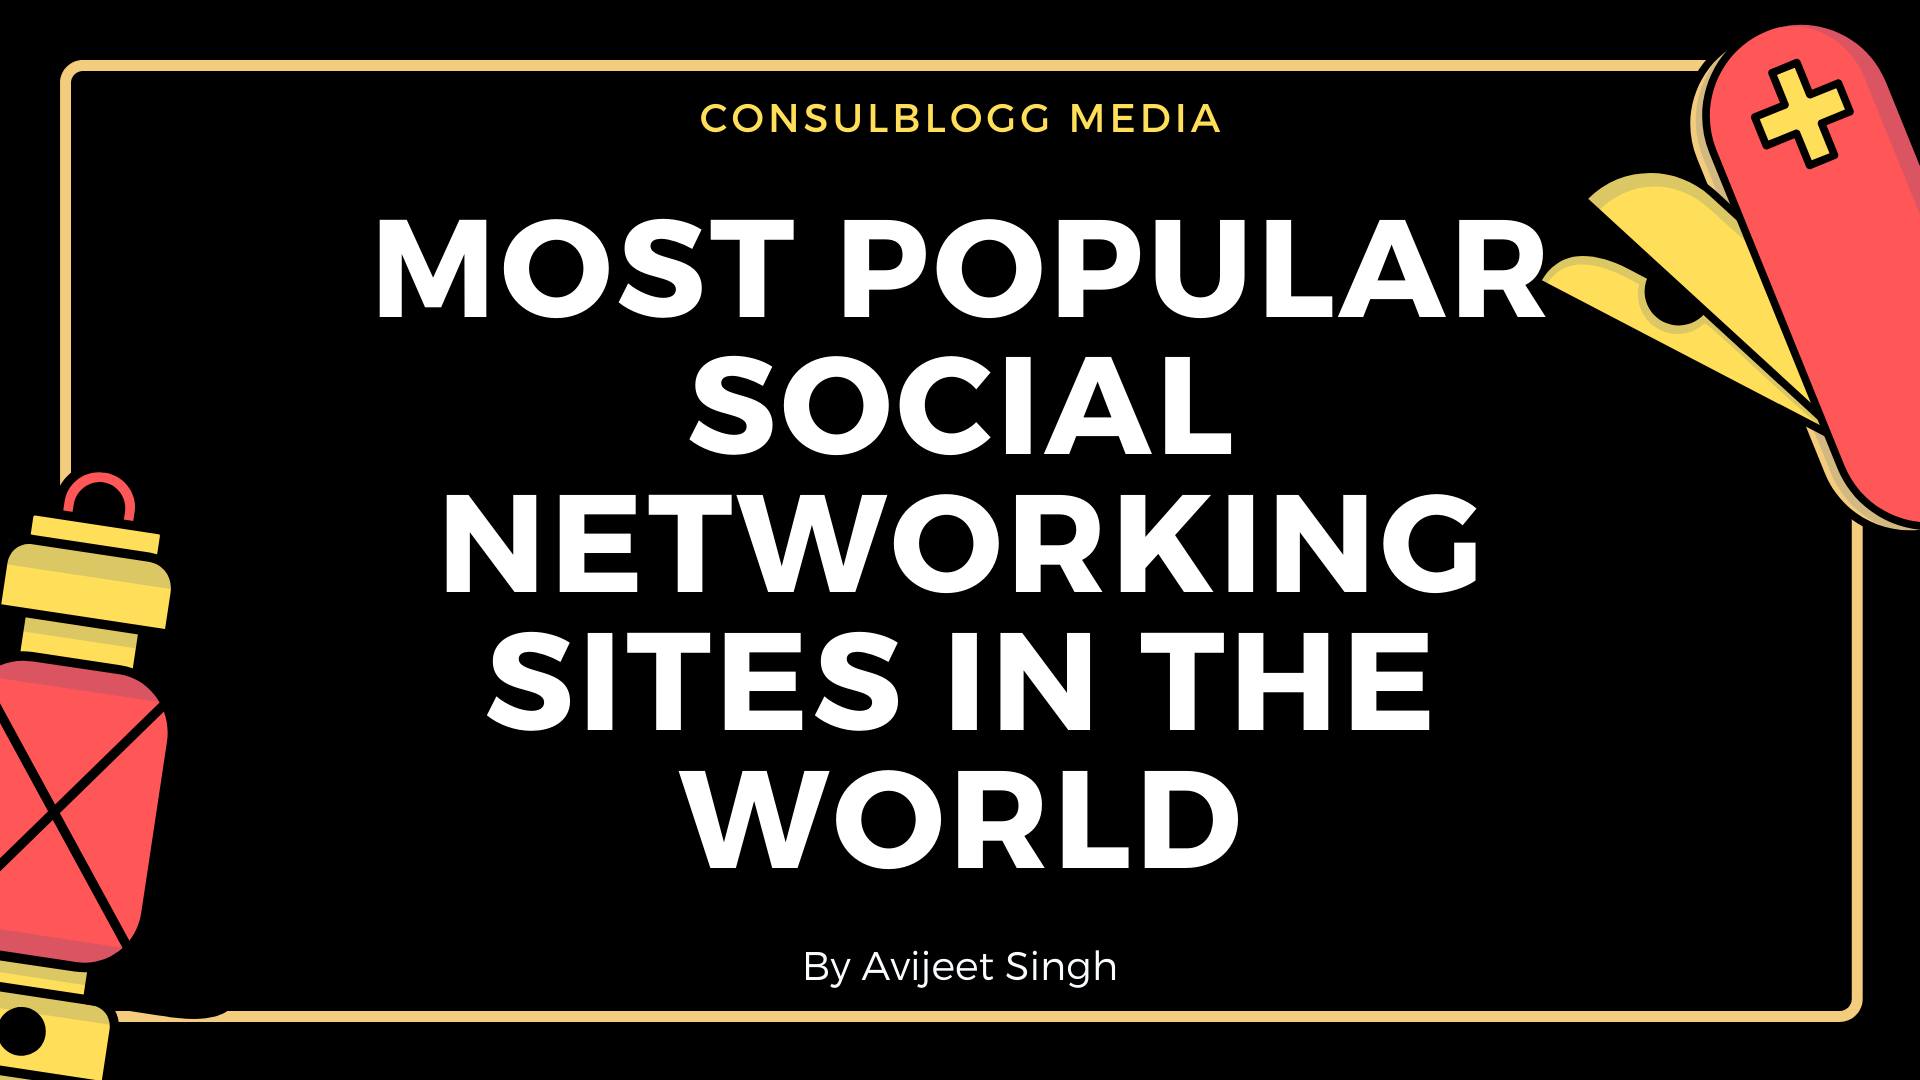 Most popular social networking sites in the world